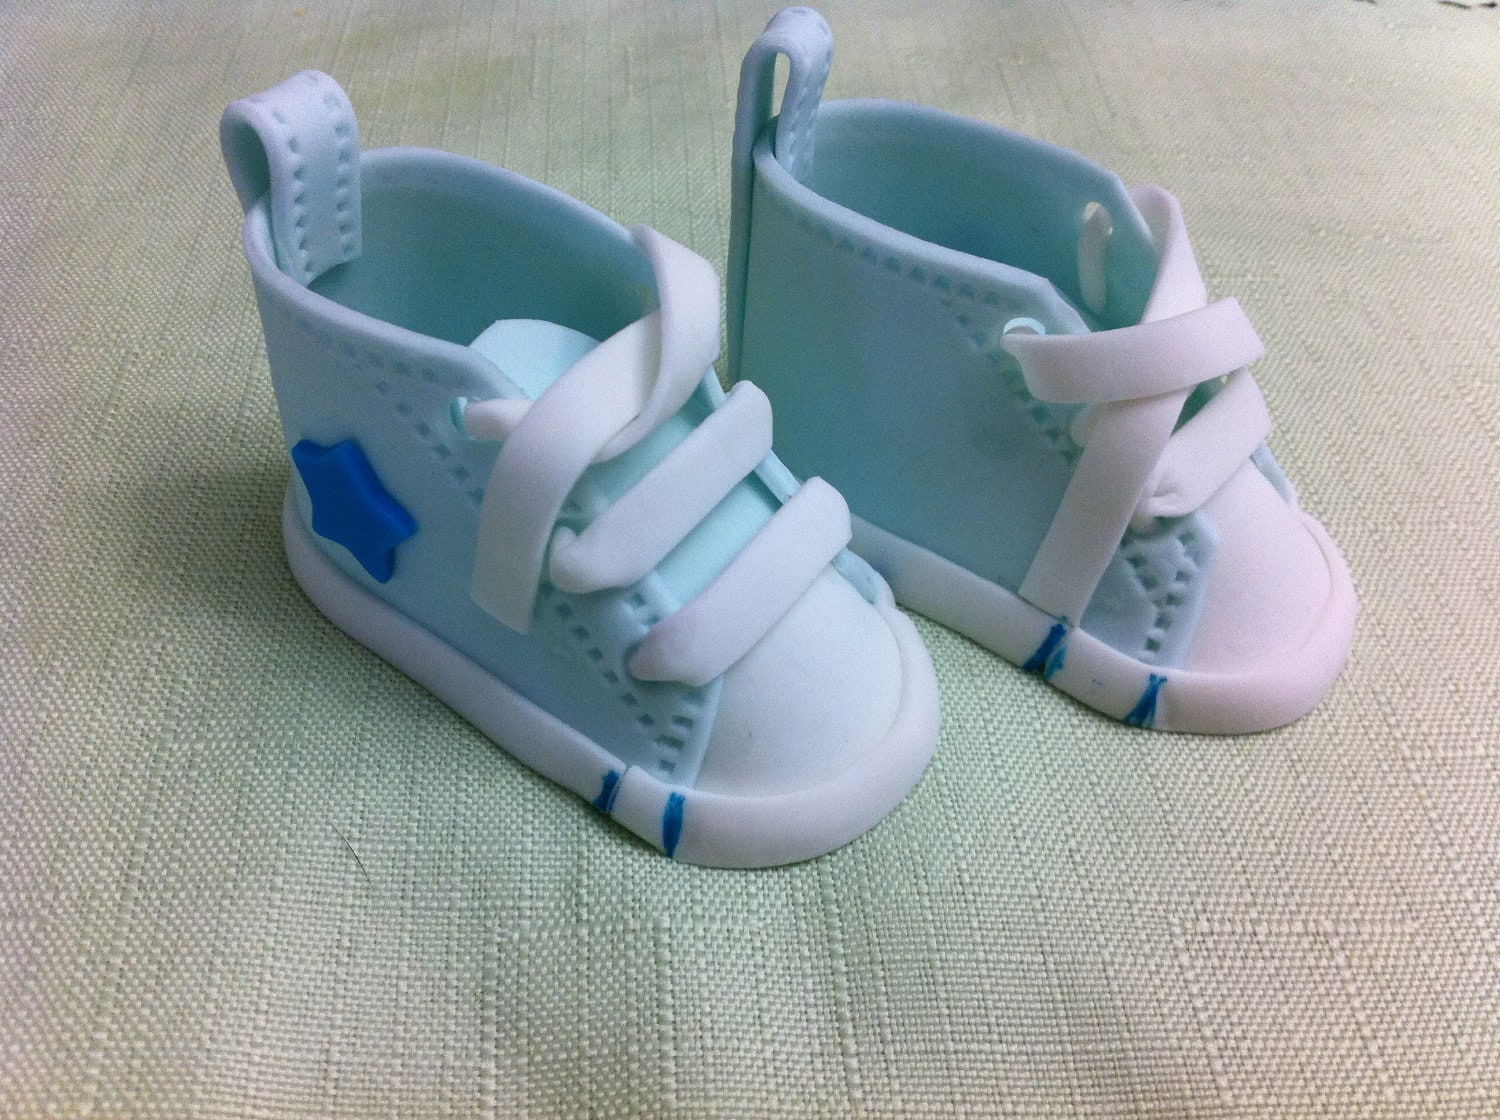 Cake Decorations Baby Shoes : edible/fondant baby shoe cake topper by rmcakedesign on Etsy